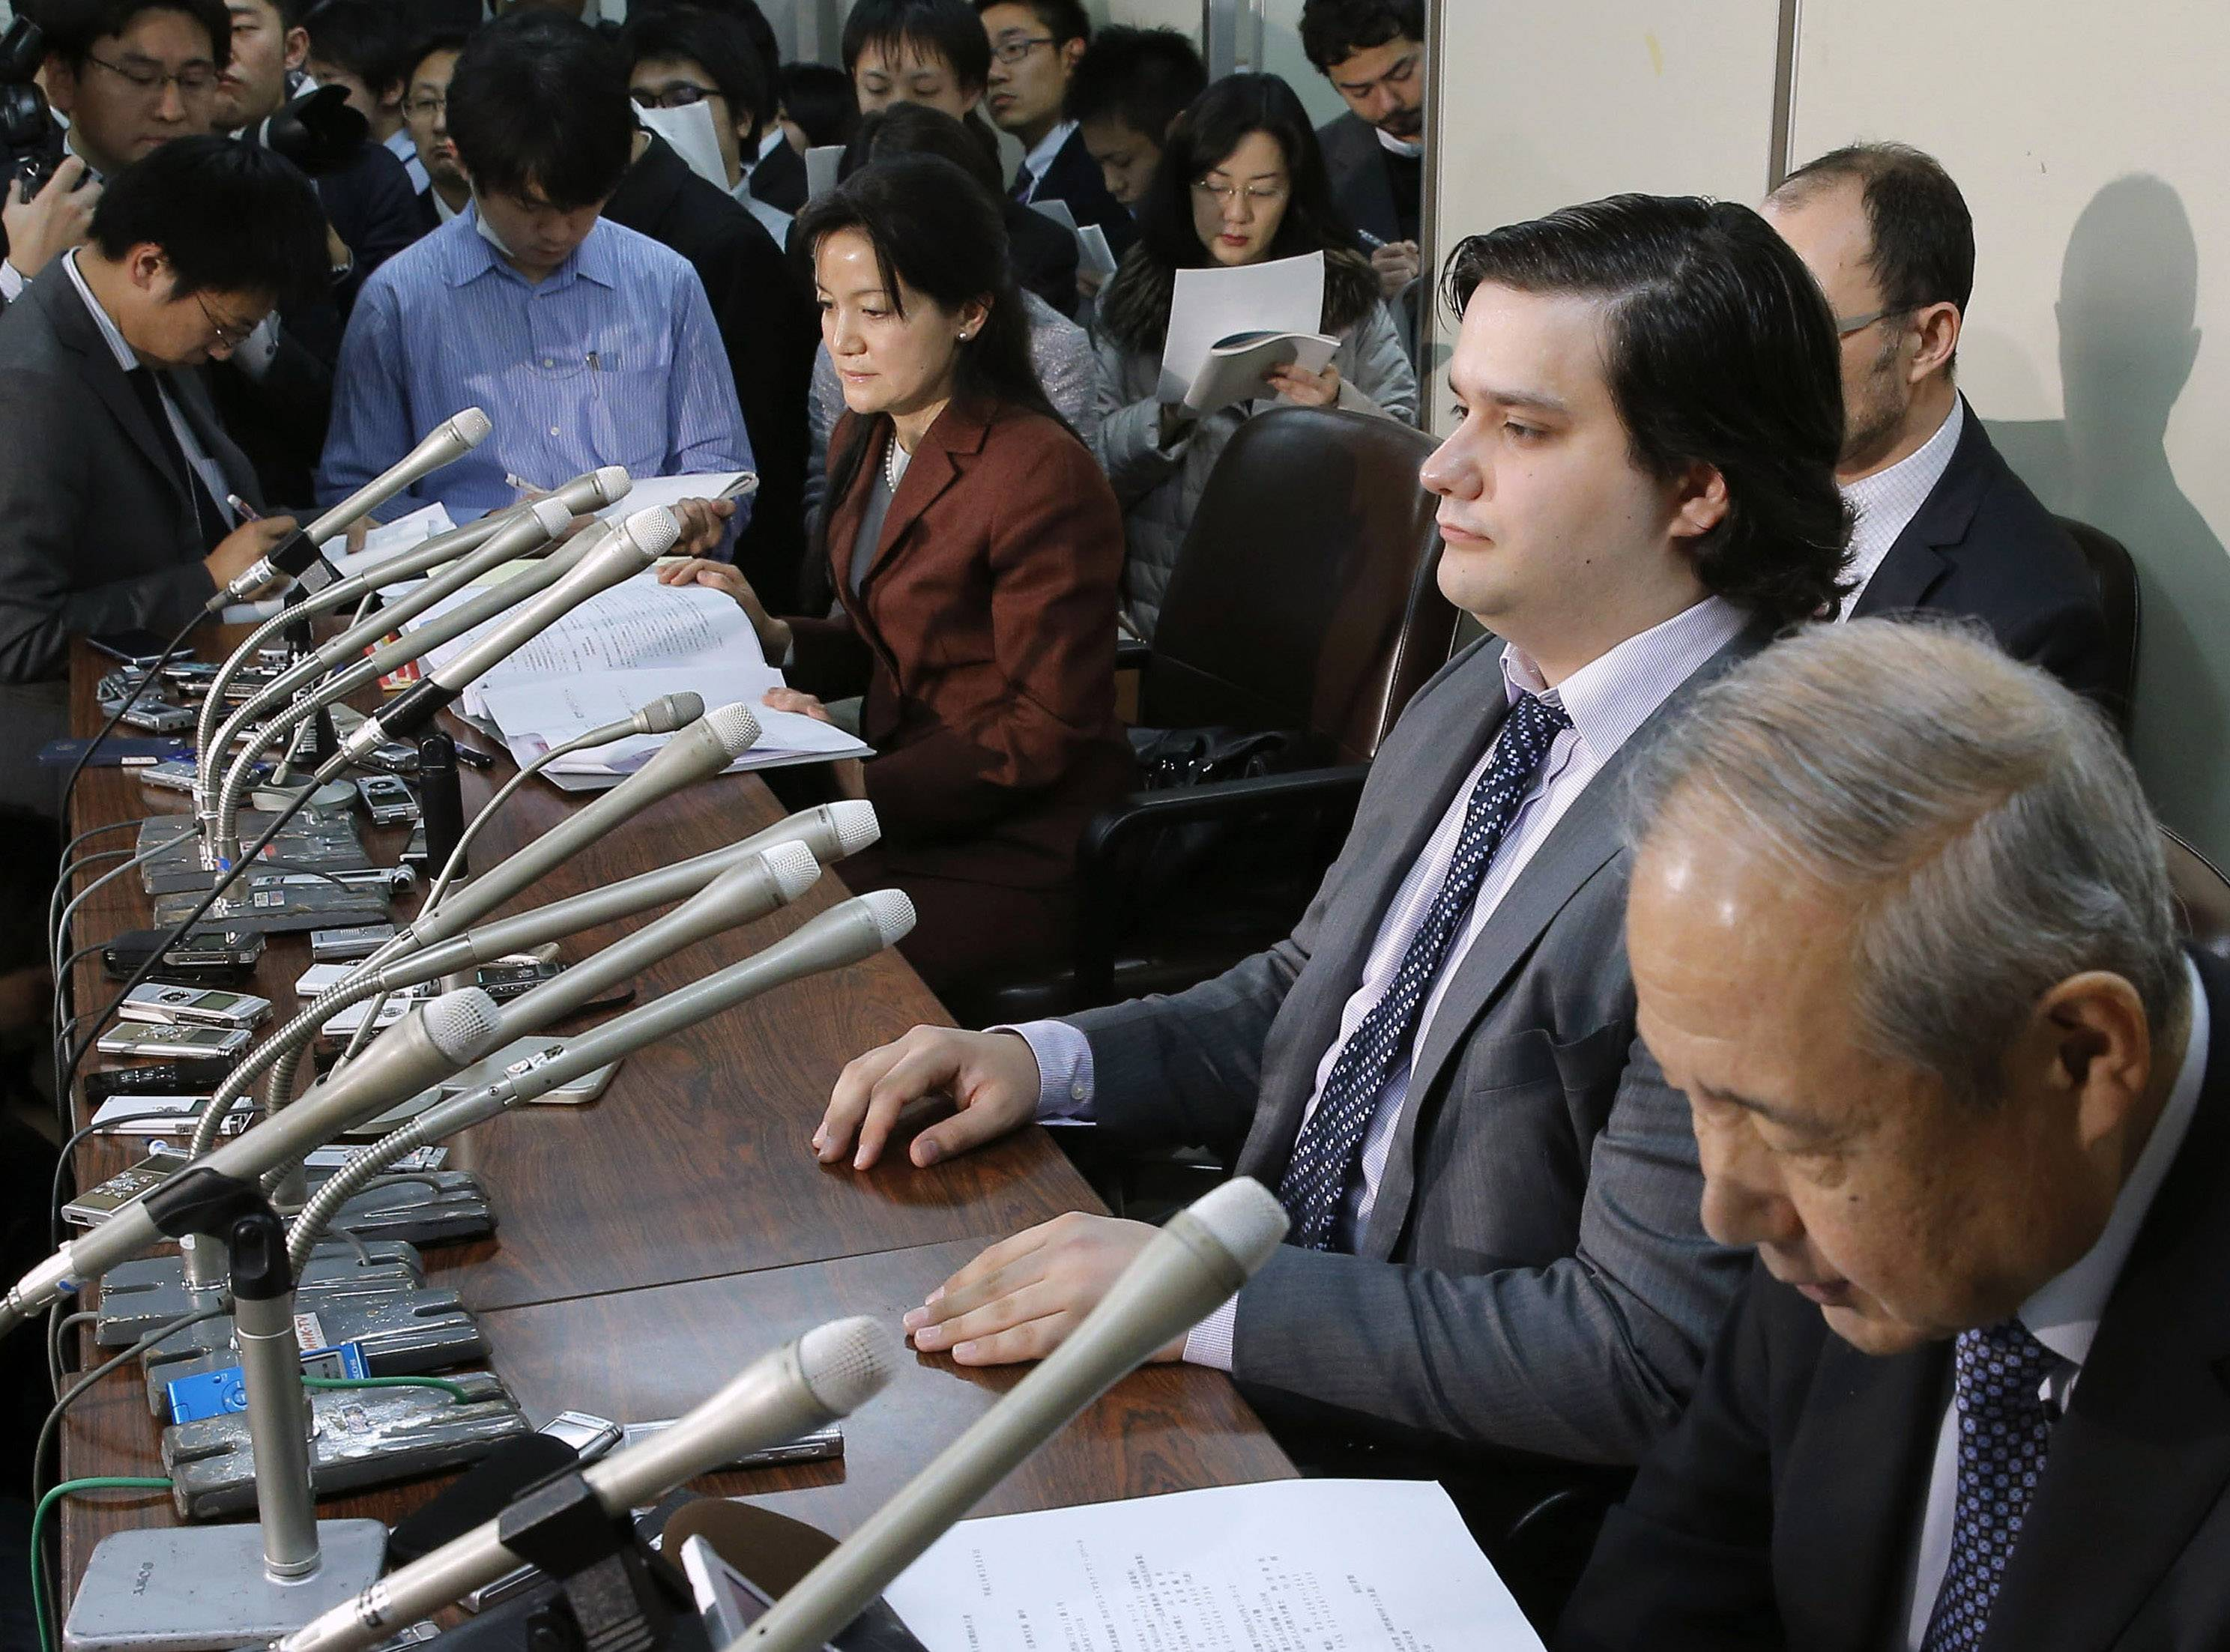 The Tokyo bitcoin exchange Mt. Gox that filed for bankruptcy protection blamed theft through hacking for its losses Monday. Mt. Gox CEO Mark Karpeles, sitting at second right, is seen here at a press conference in on Feb. 28, 2014.